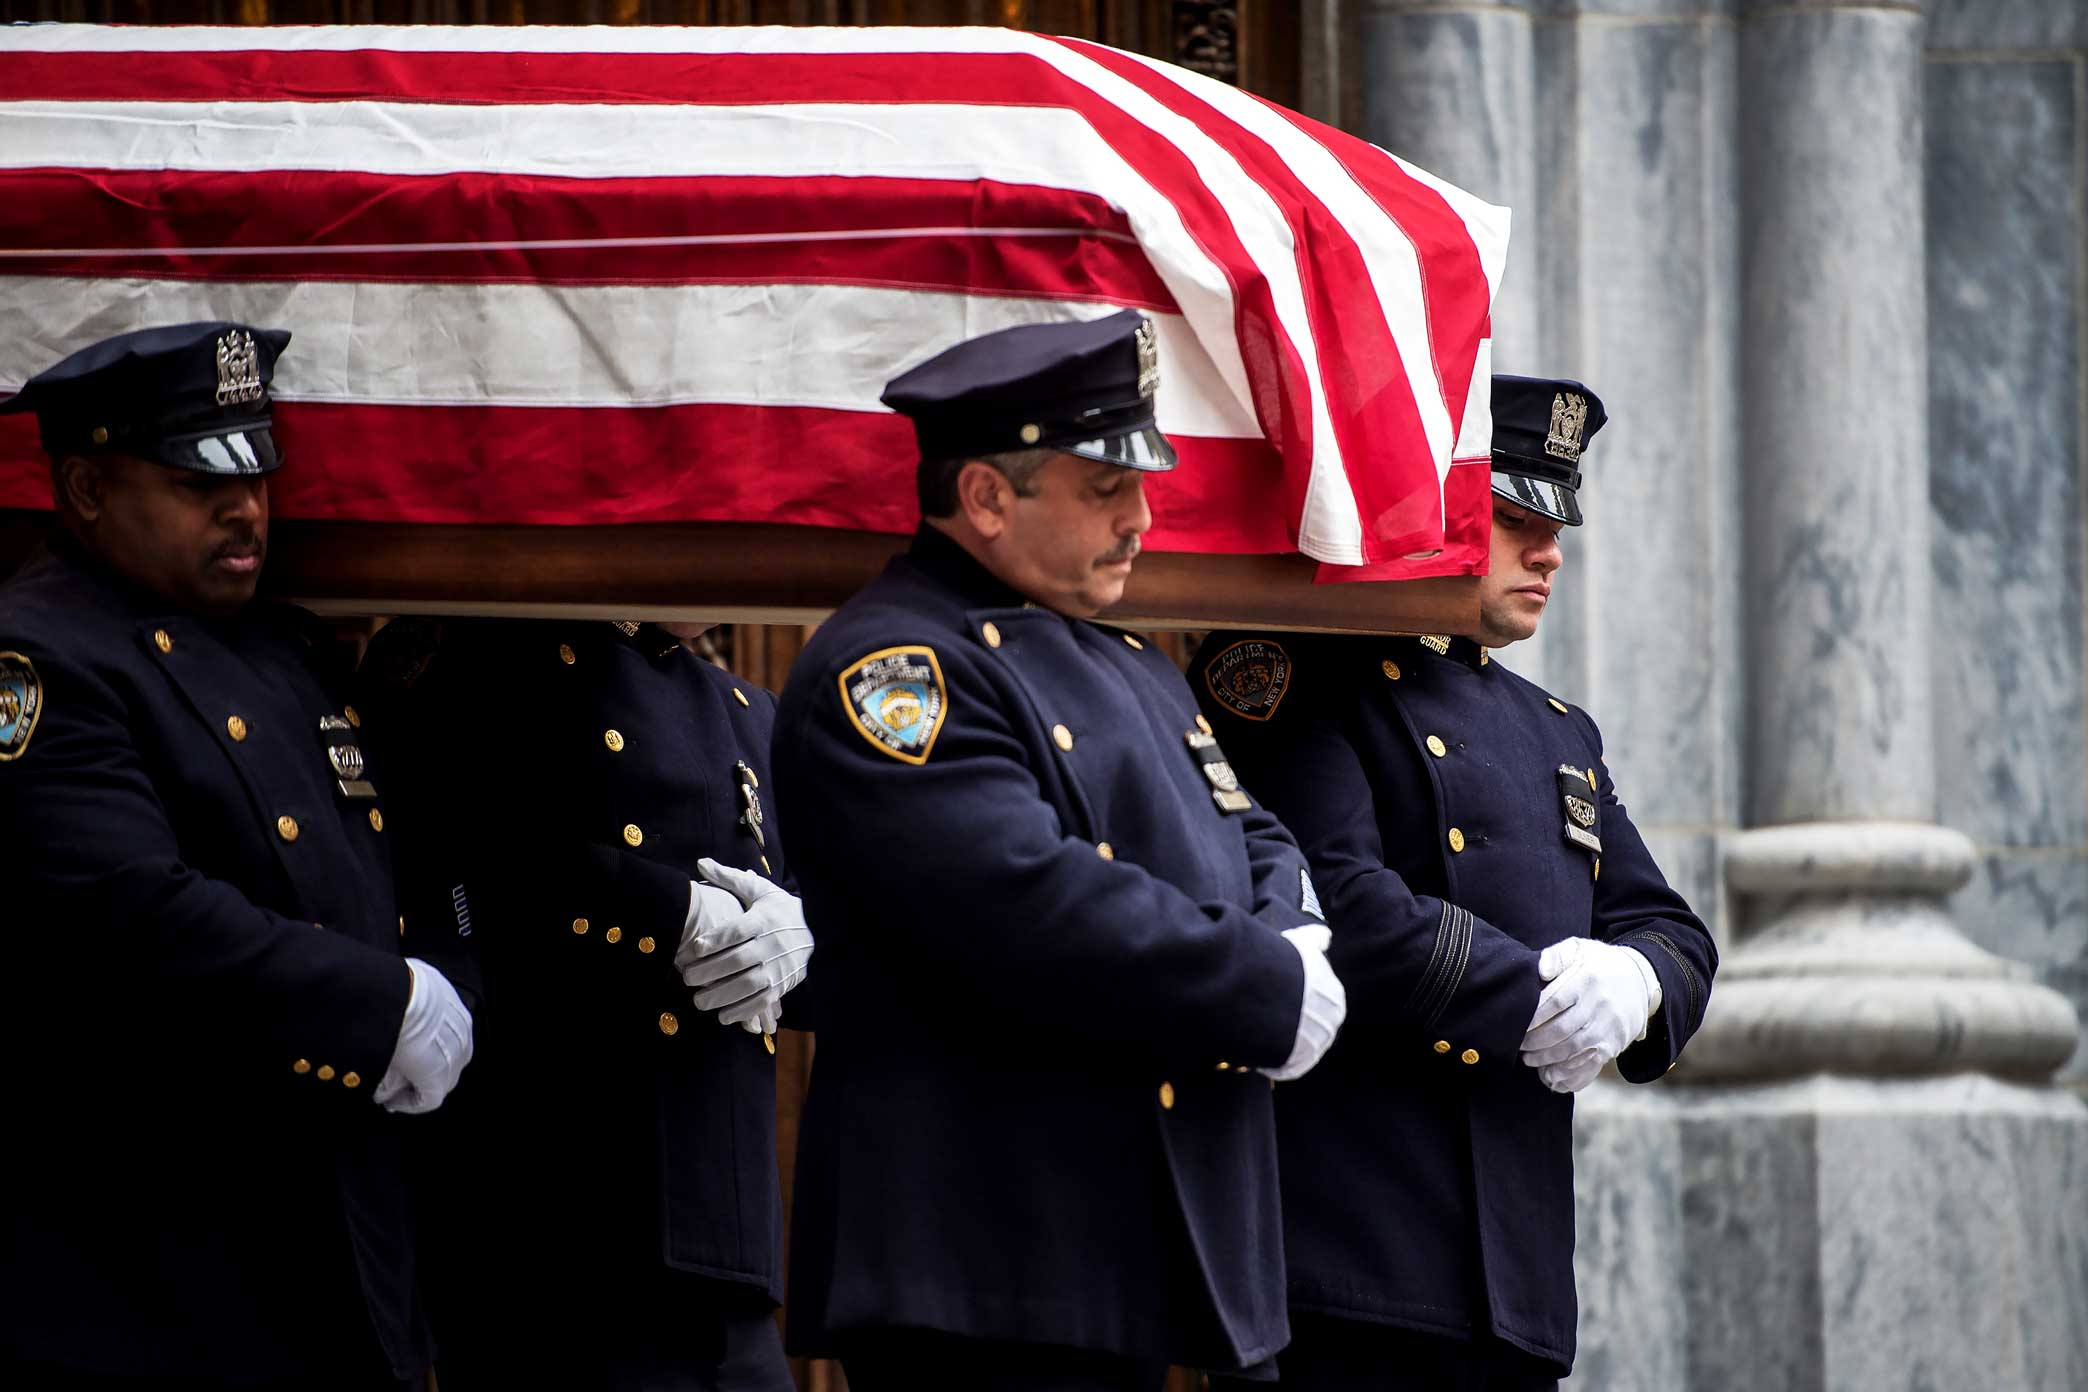 NYPD Police Officers carry and salute NYPD Detective Joseph Lemm at St. Patrick's Cathedral in Manhattan, New York. Detective Lemm was killed by a suicide bomber while serving in the Air National Guard in Afghanistan.